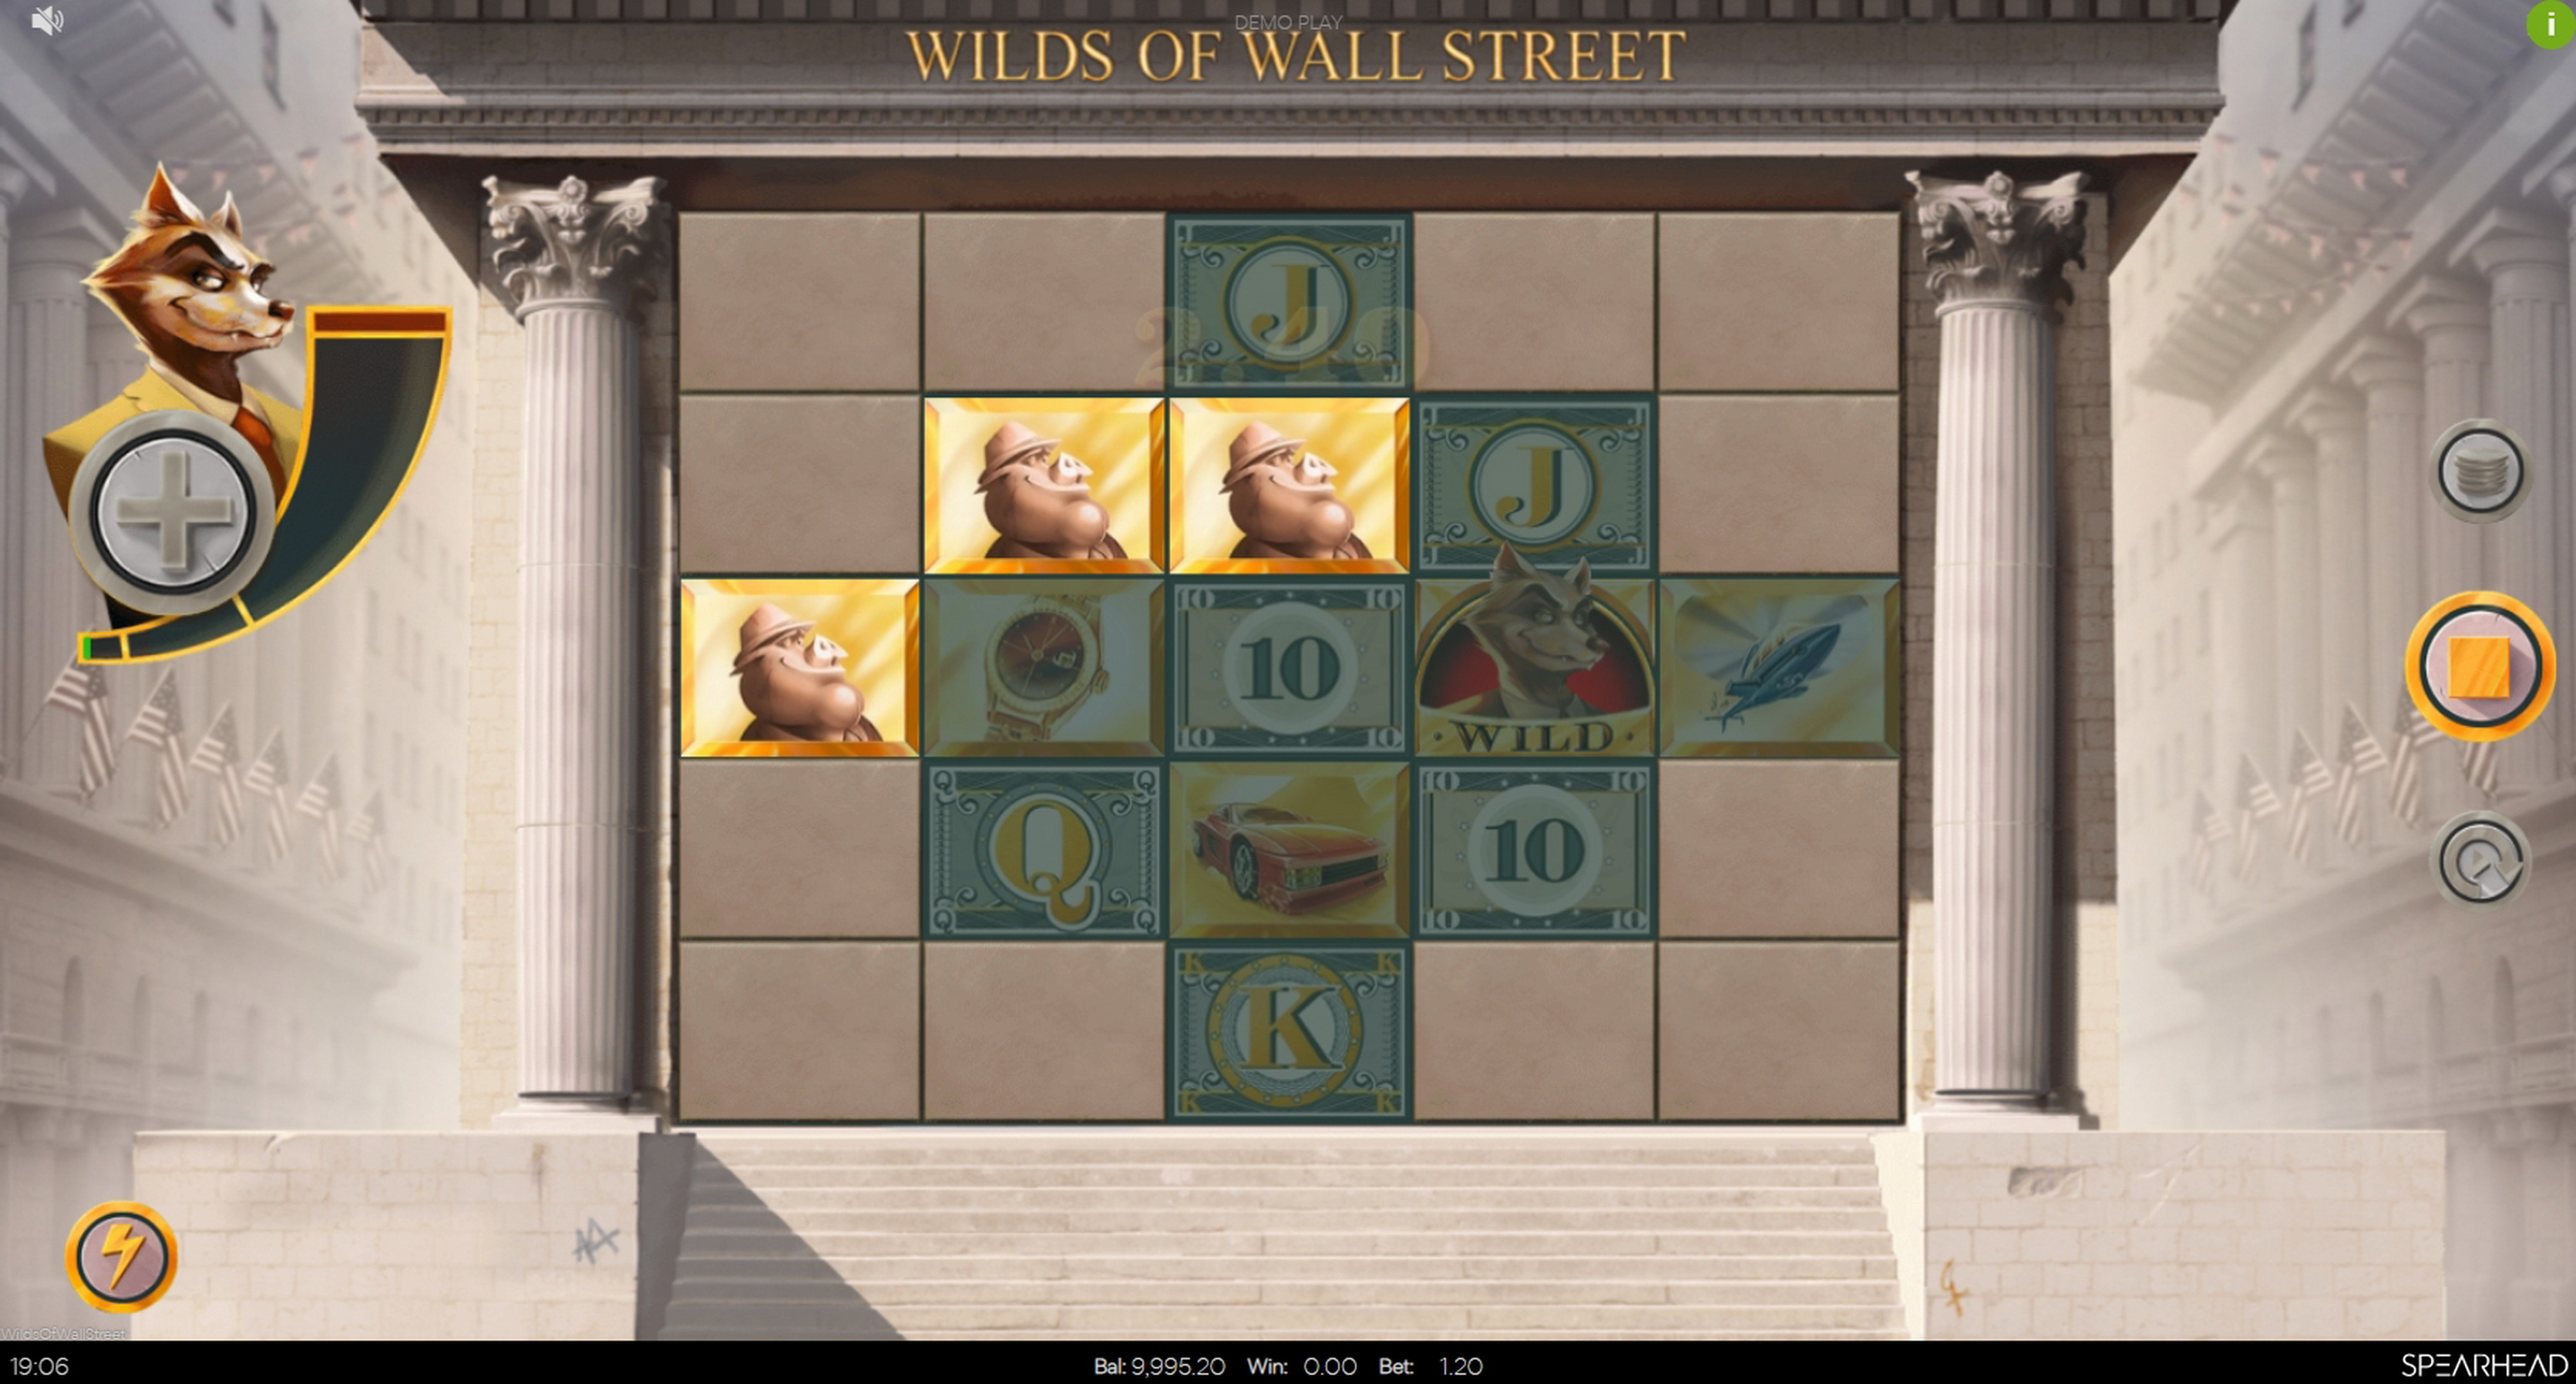 Win Money in Wilds of Wall Street Free Slot Game by Spearhead Studios